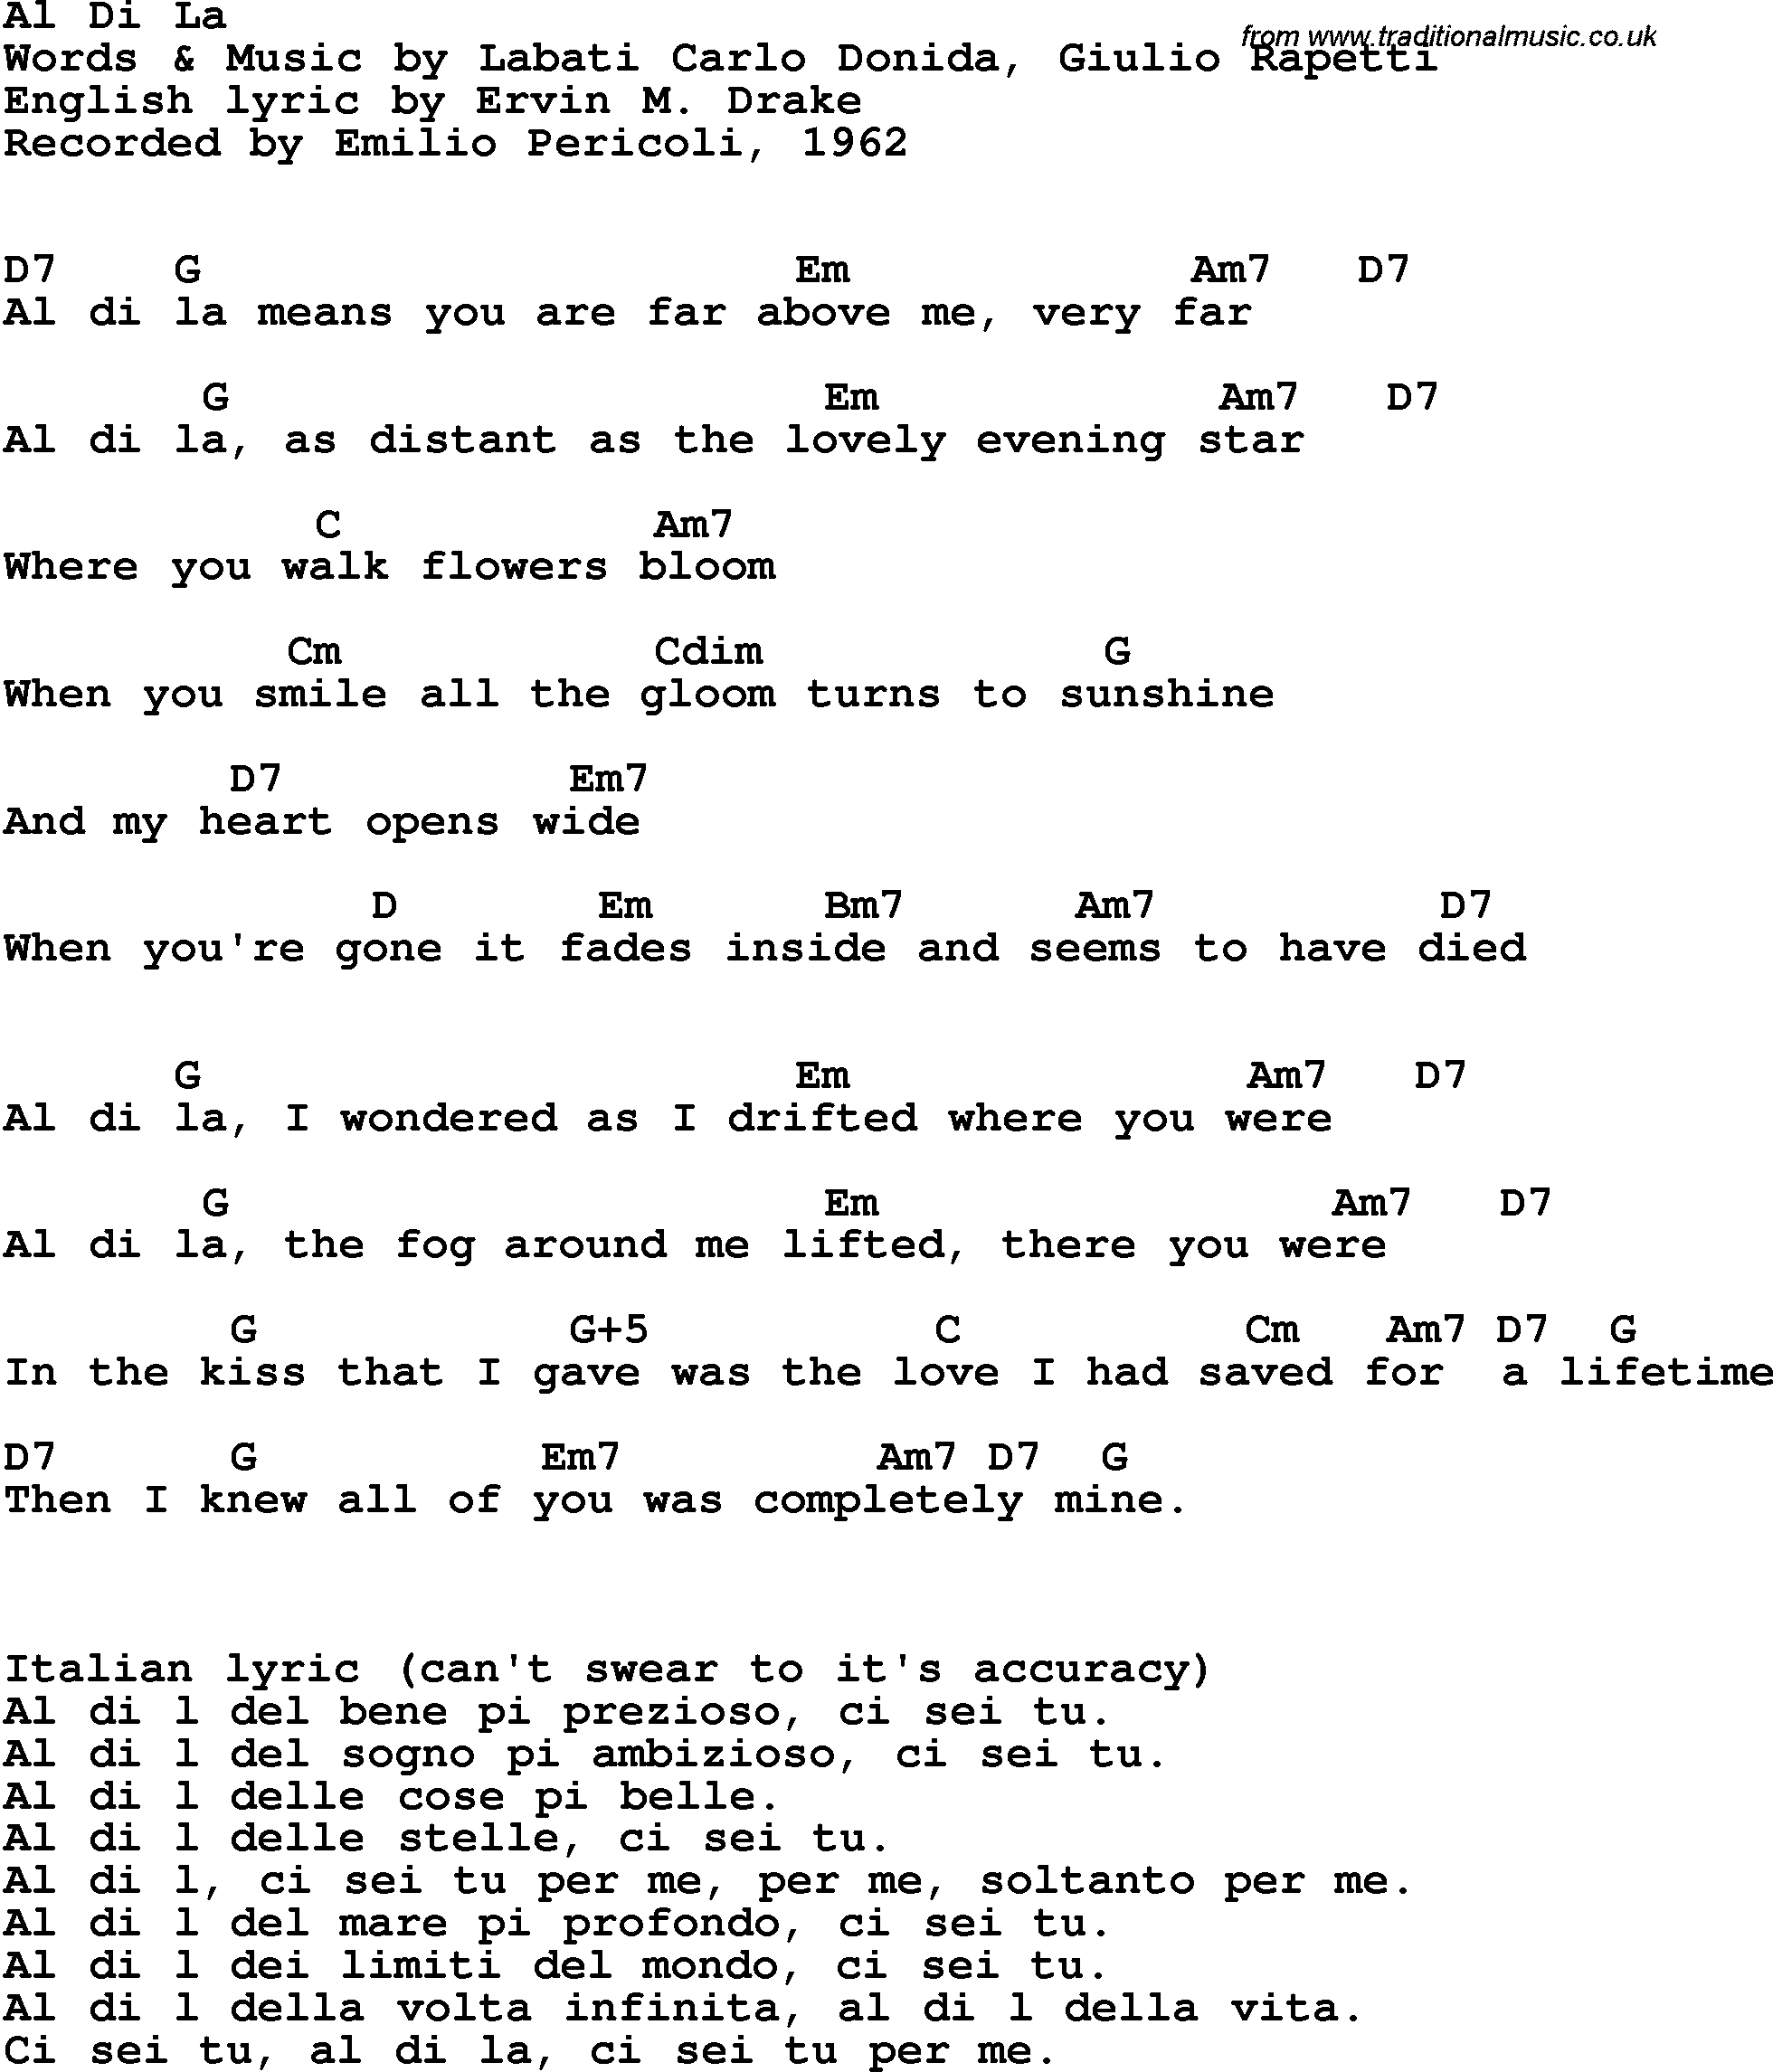 Song Lyrics With Guitar Chords For Al Di La Emilio Pericoli 1962